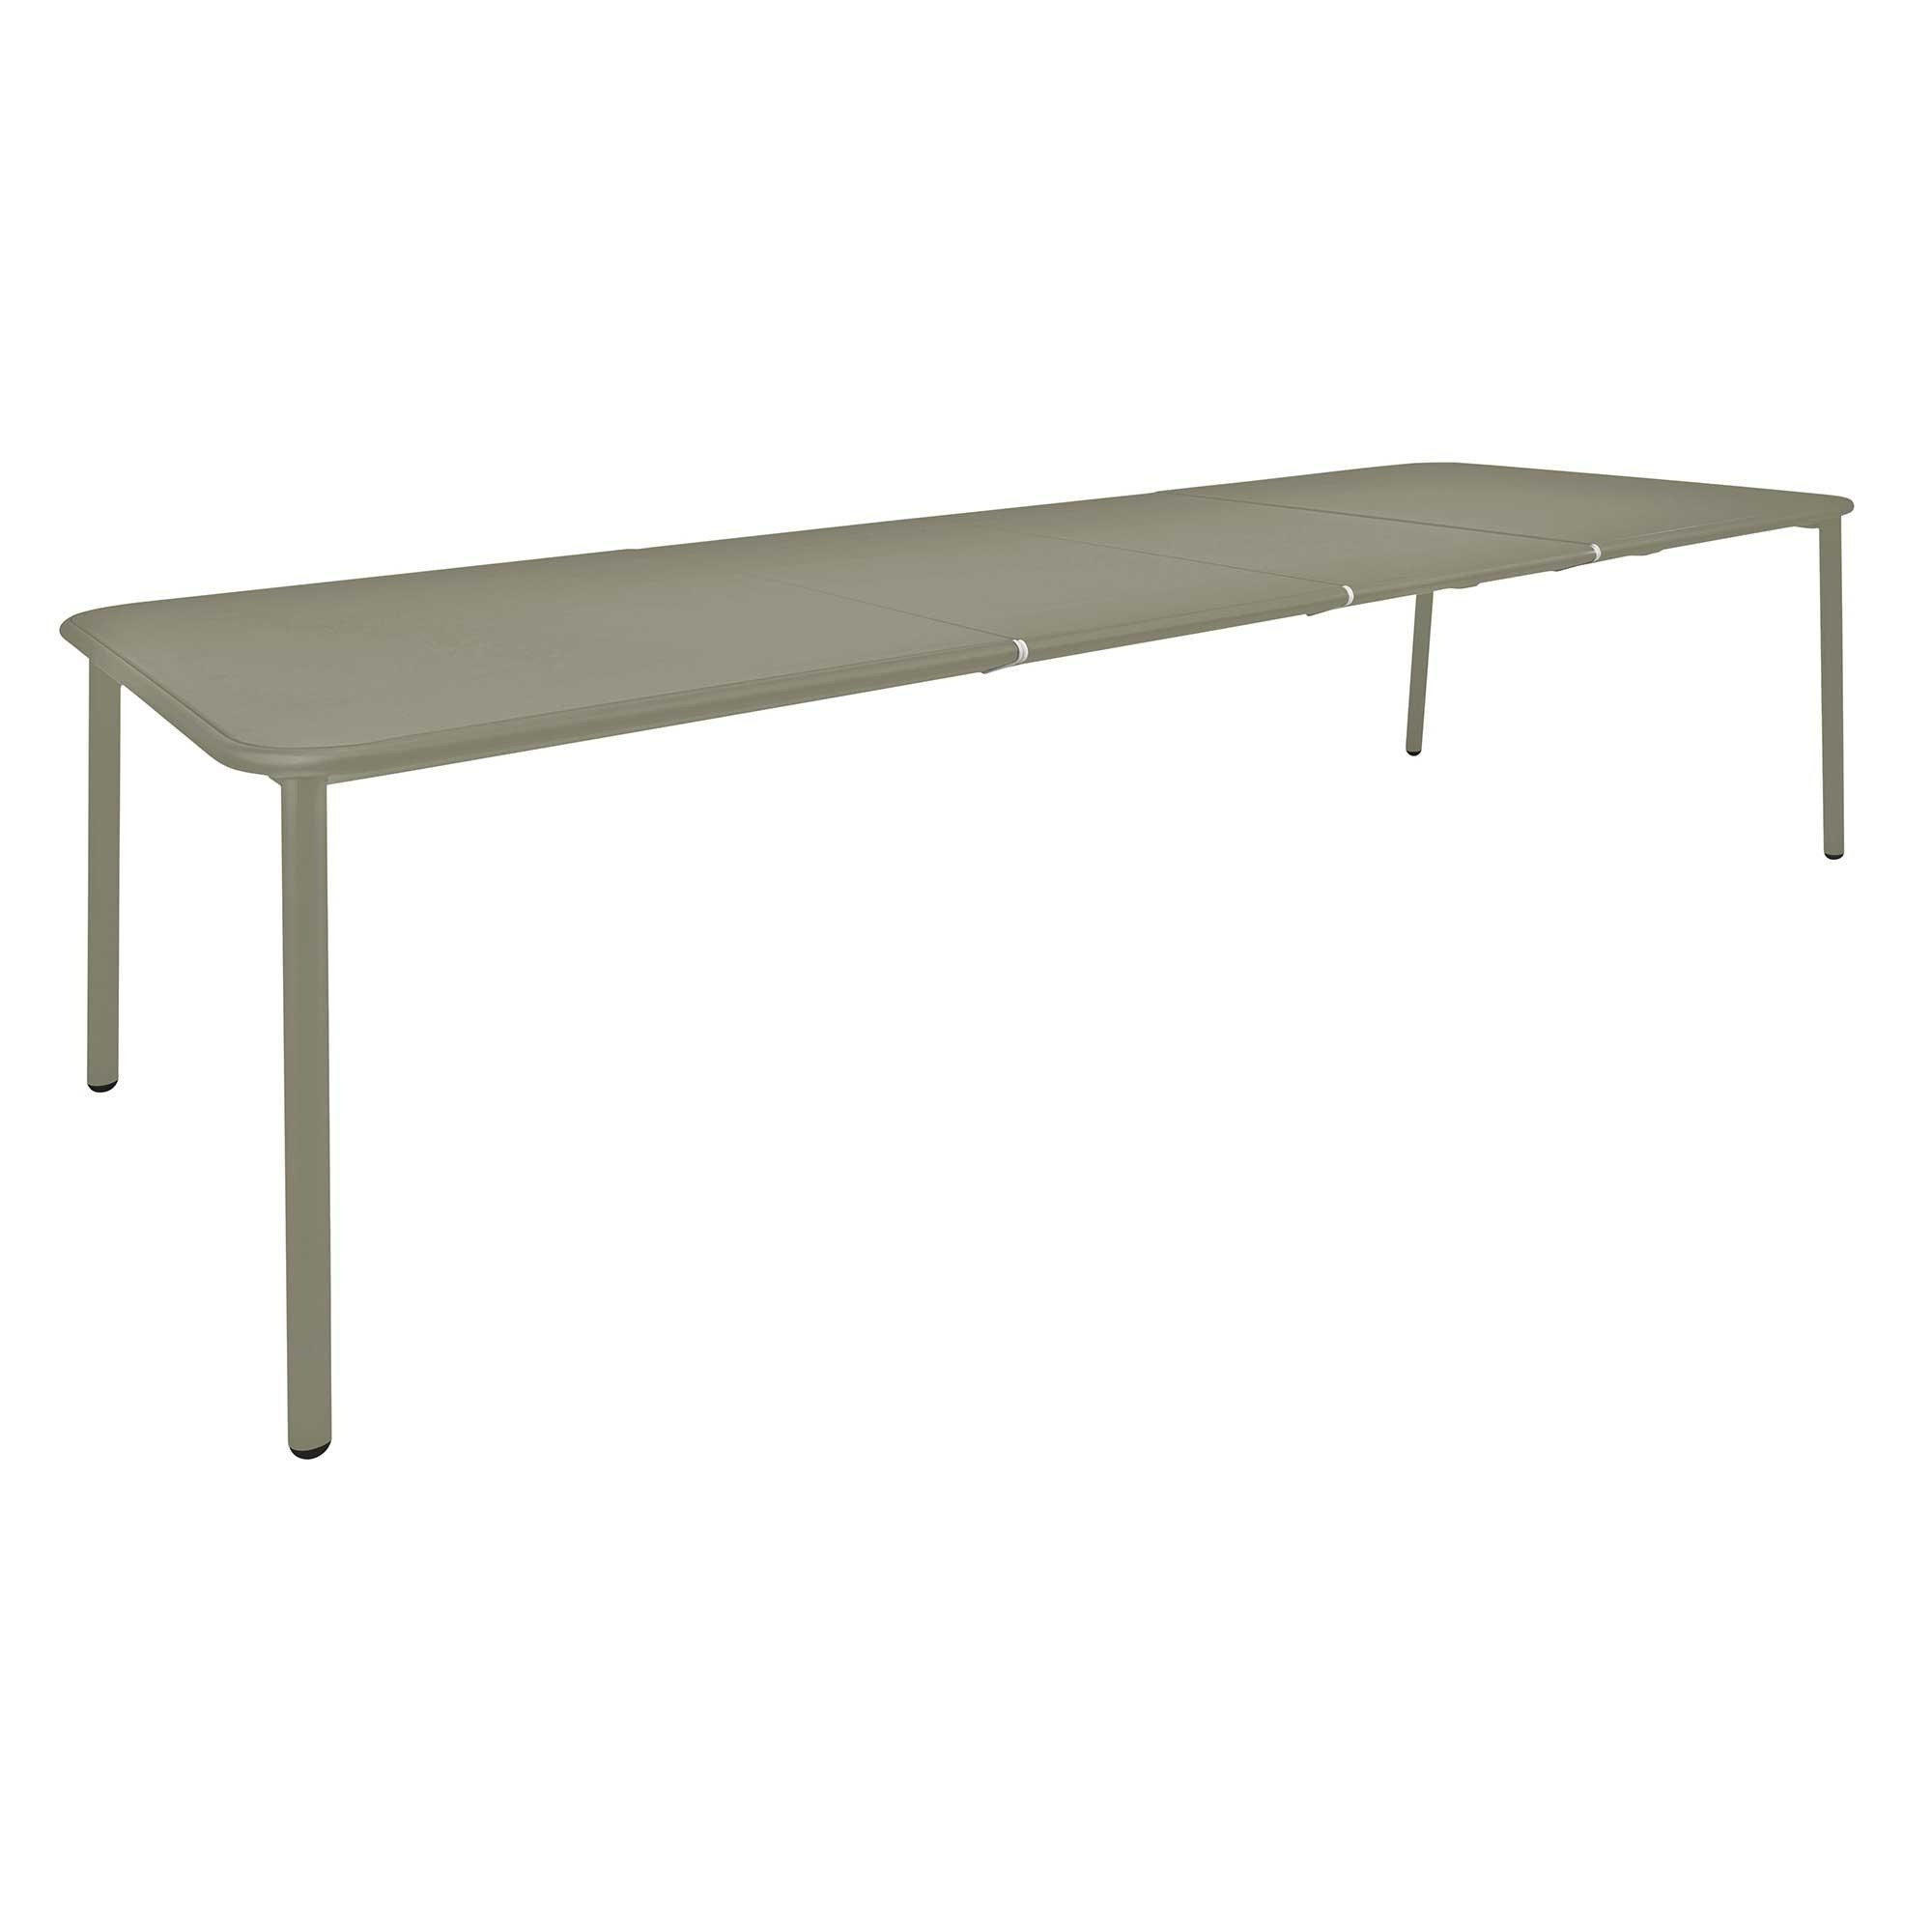 Best Of Extendable Outdoor Table